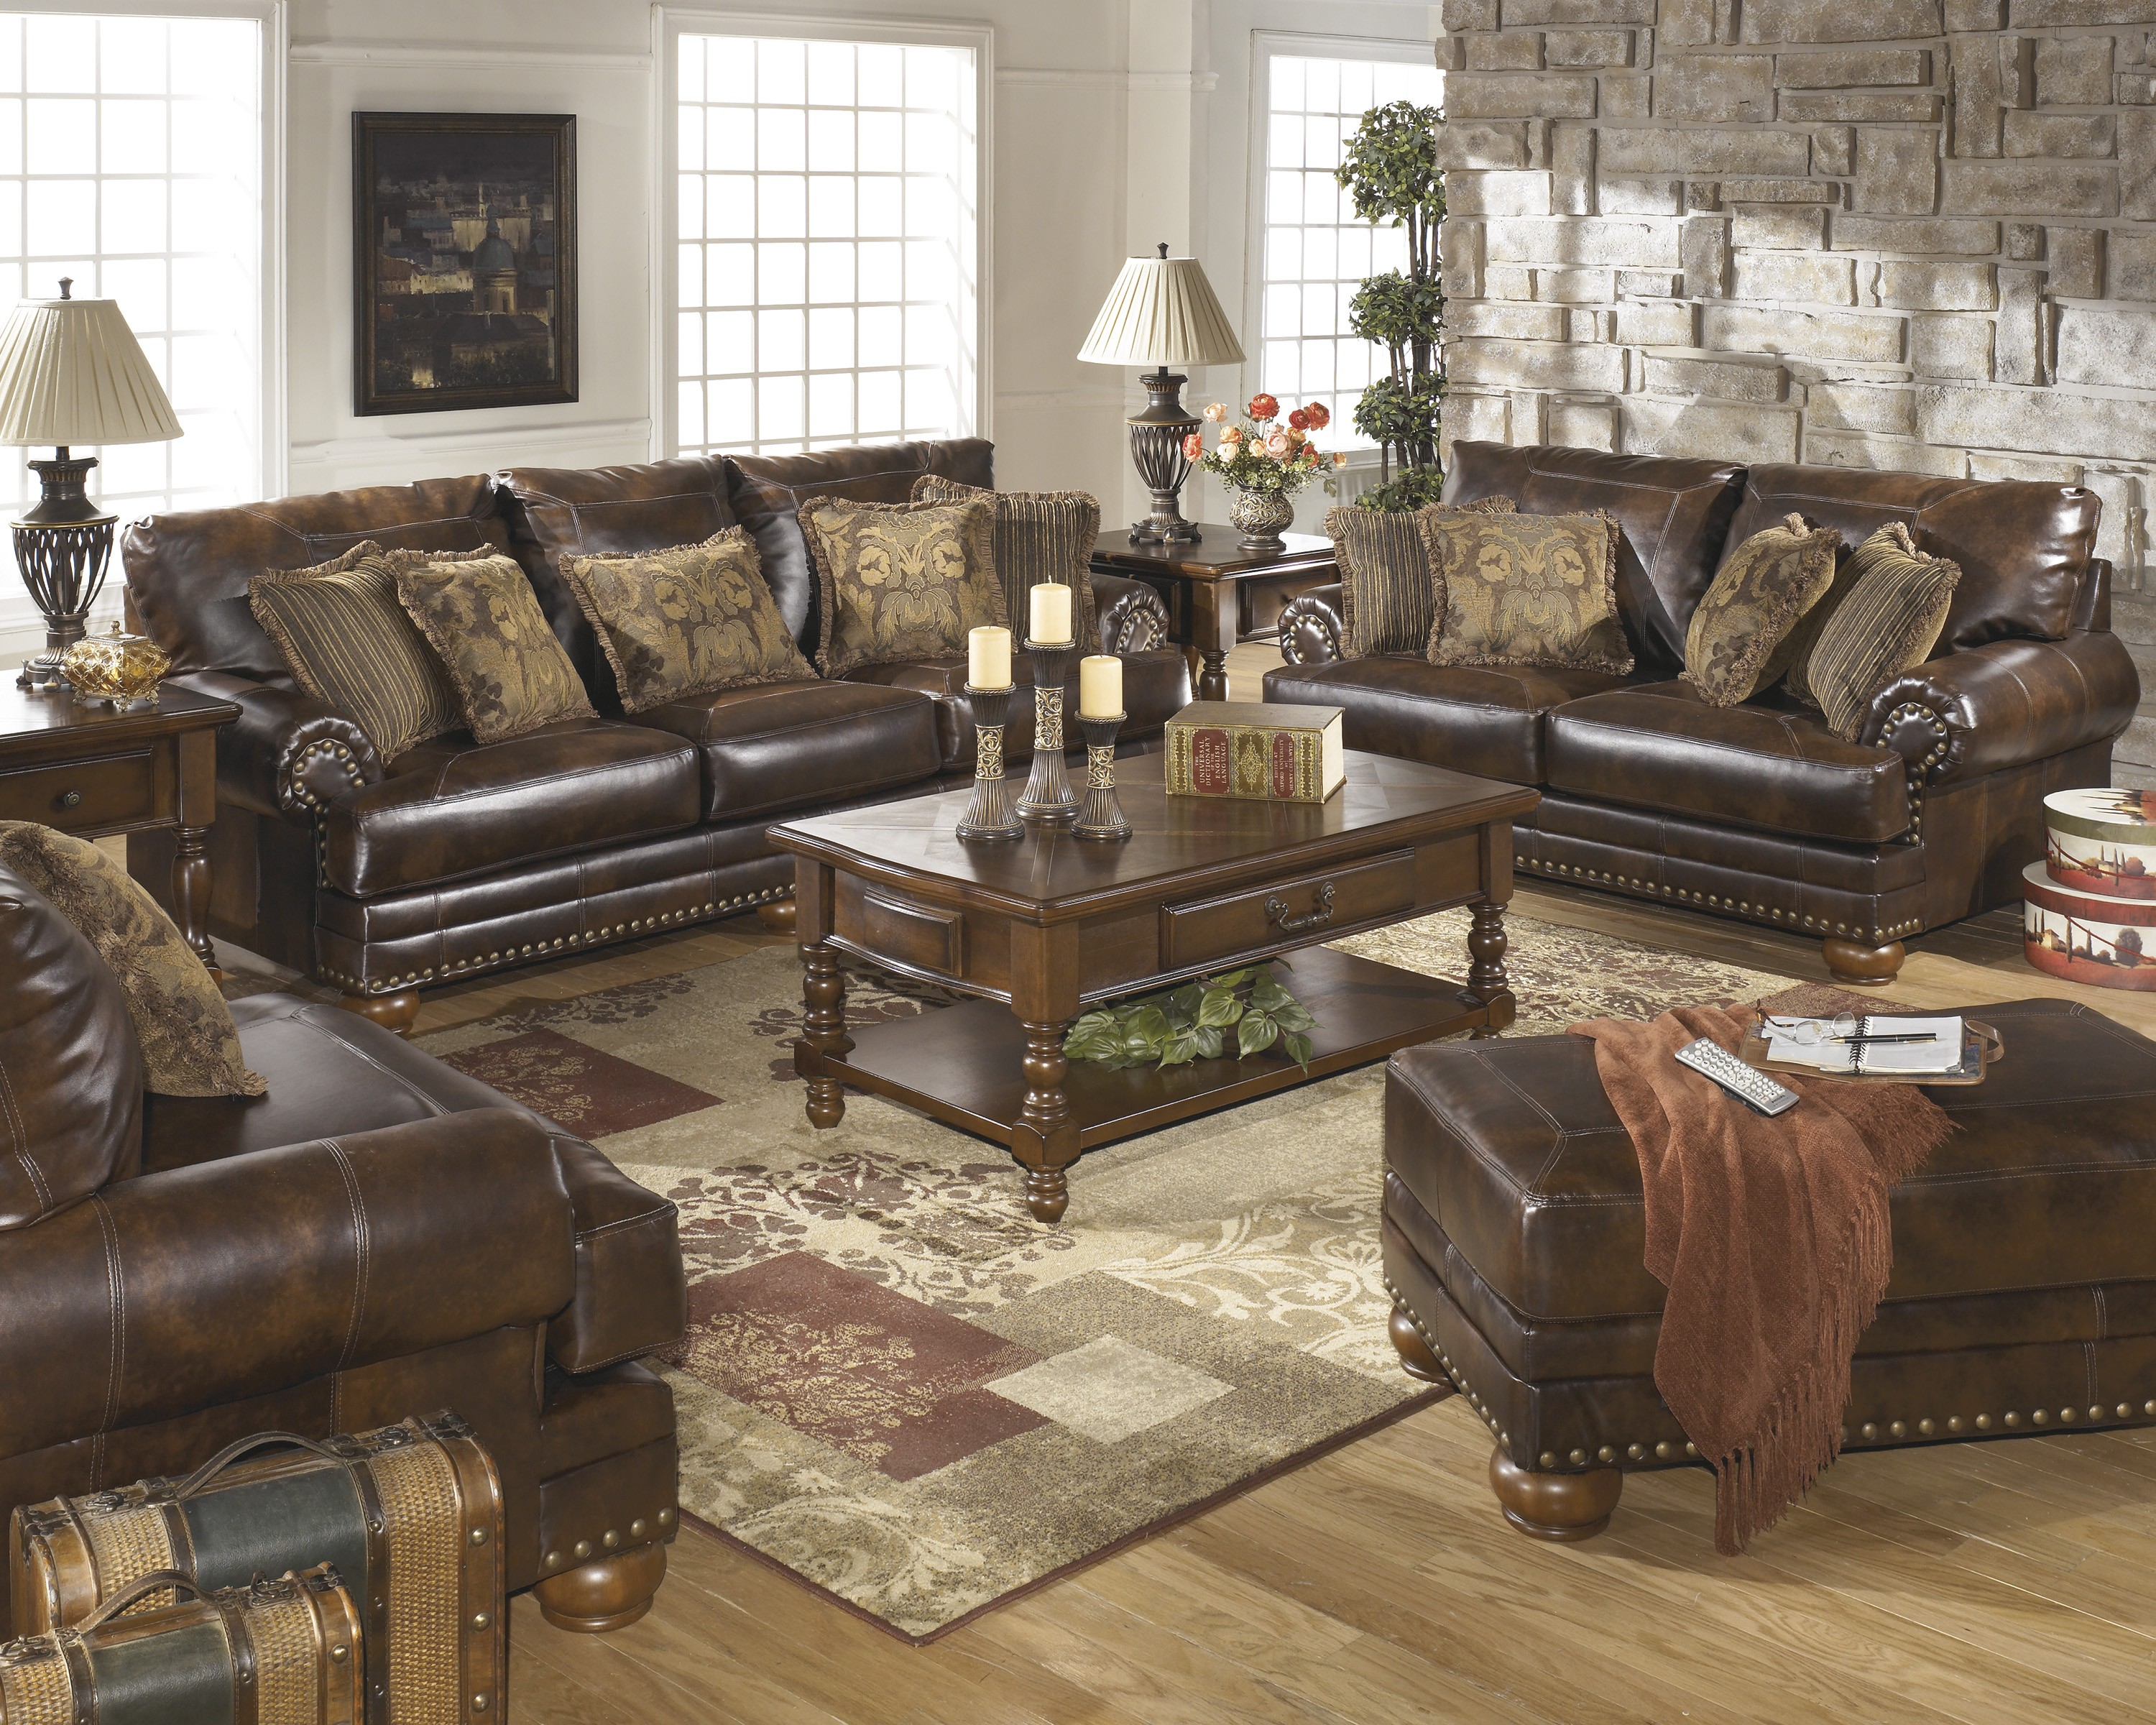 Brown Leather Durablend Antique 4pc Sofa Living Room Package Ashley Furniture throughout 14 Smart Ways How to Makeover Ashley Living Room Set